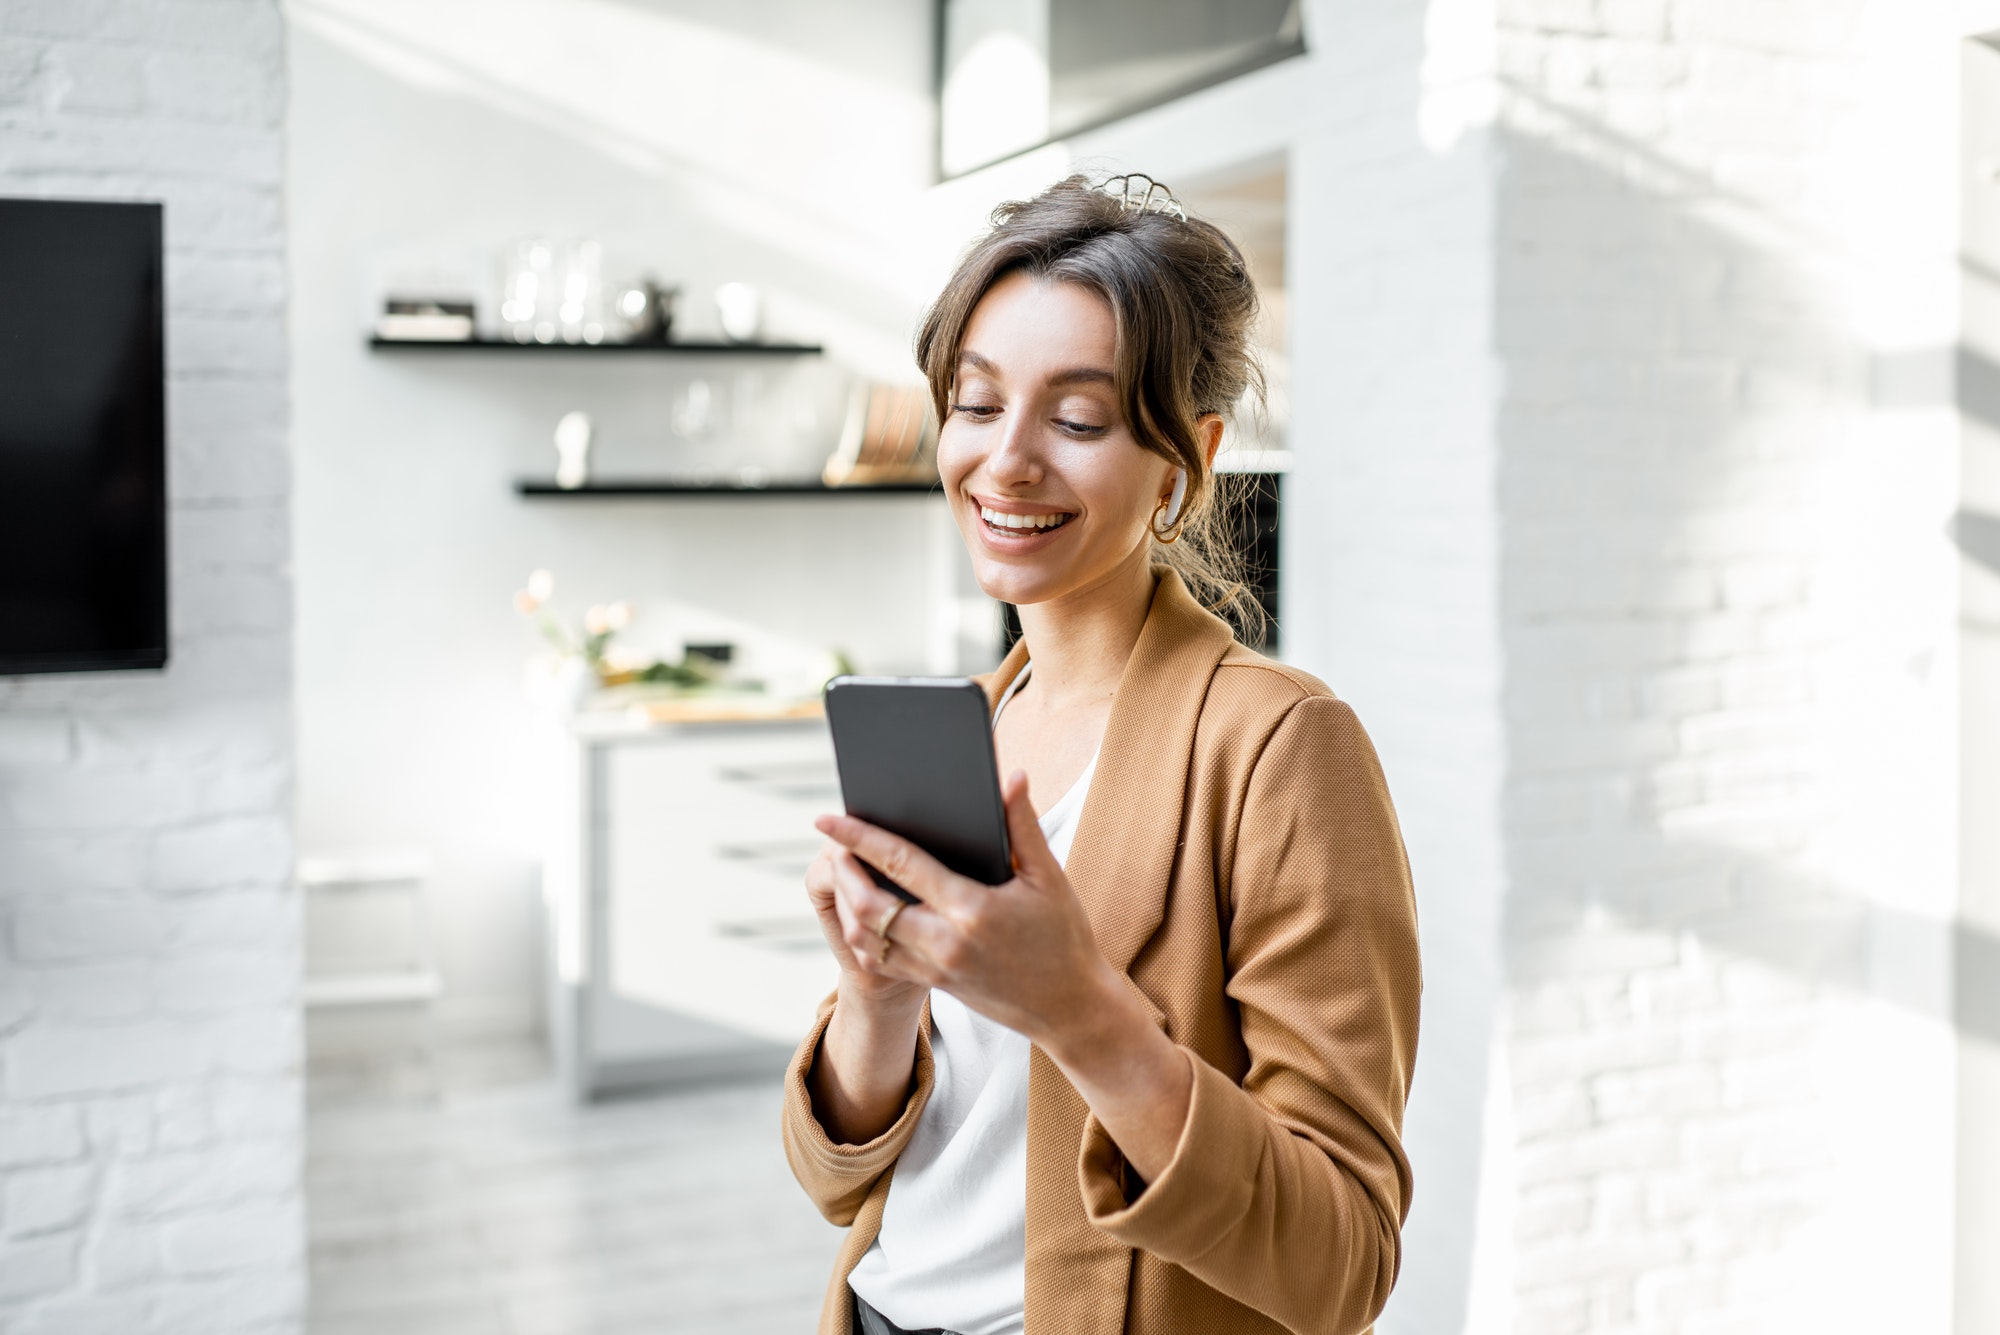 Business woman with smart phone at home